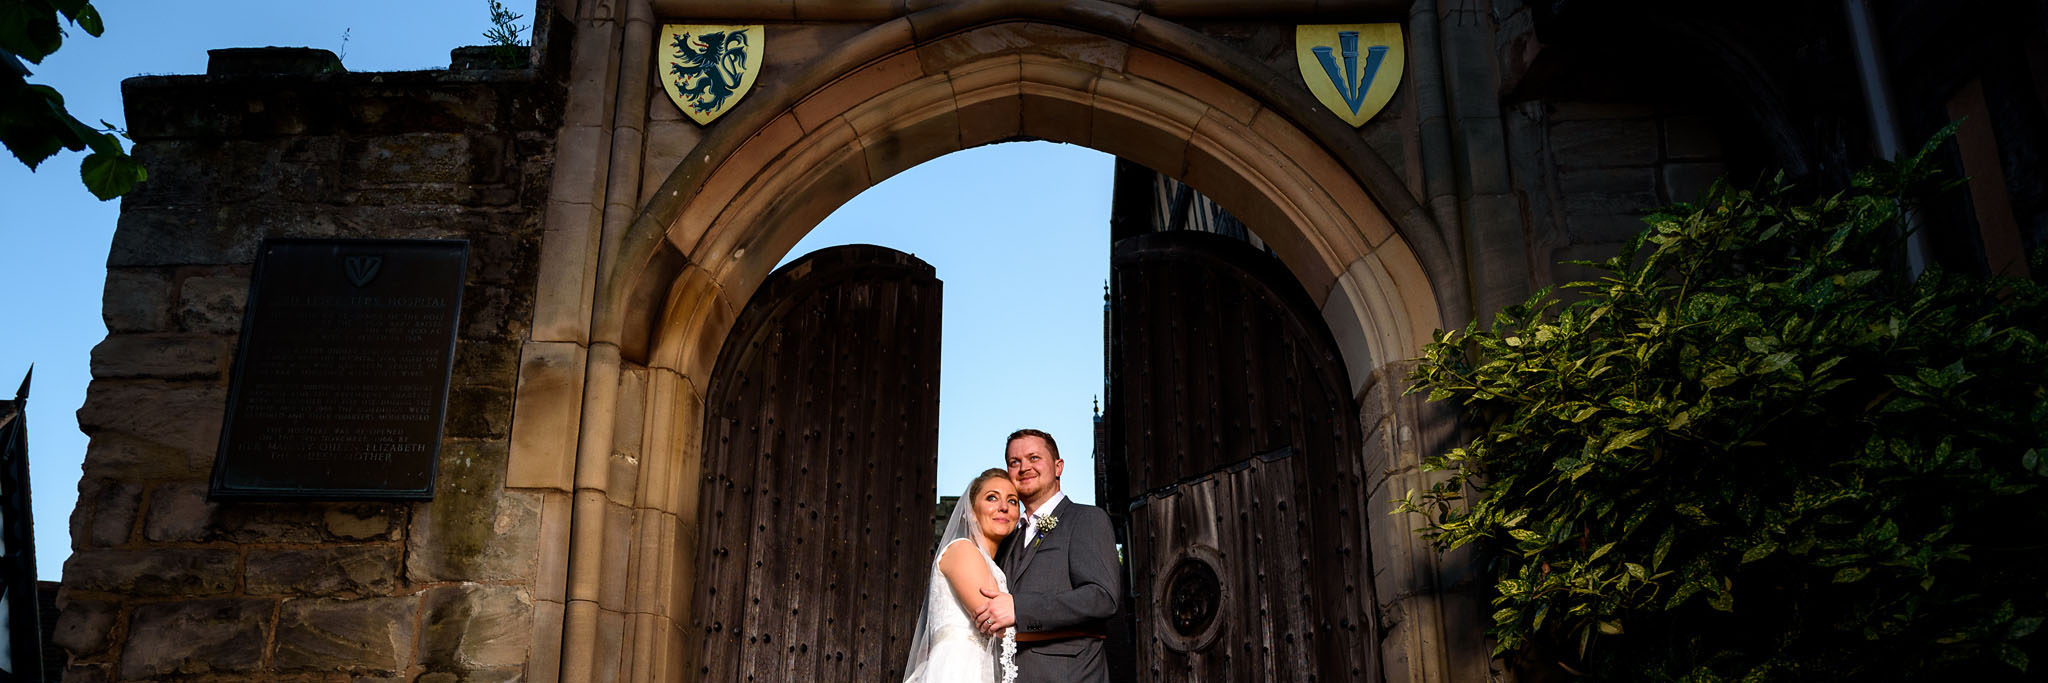 evening portrait of the bride and groom outside lord leycester hospital